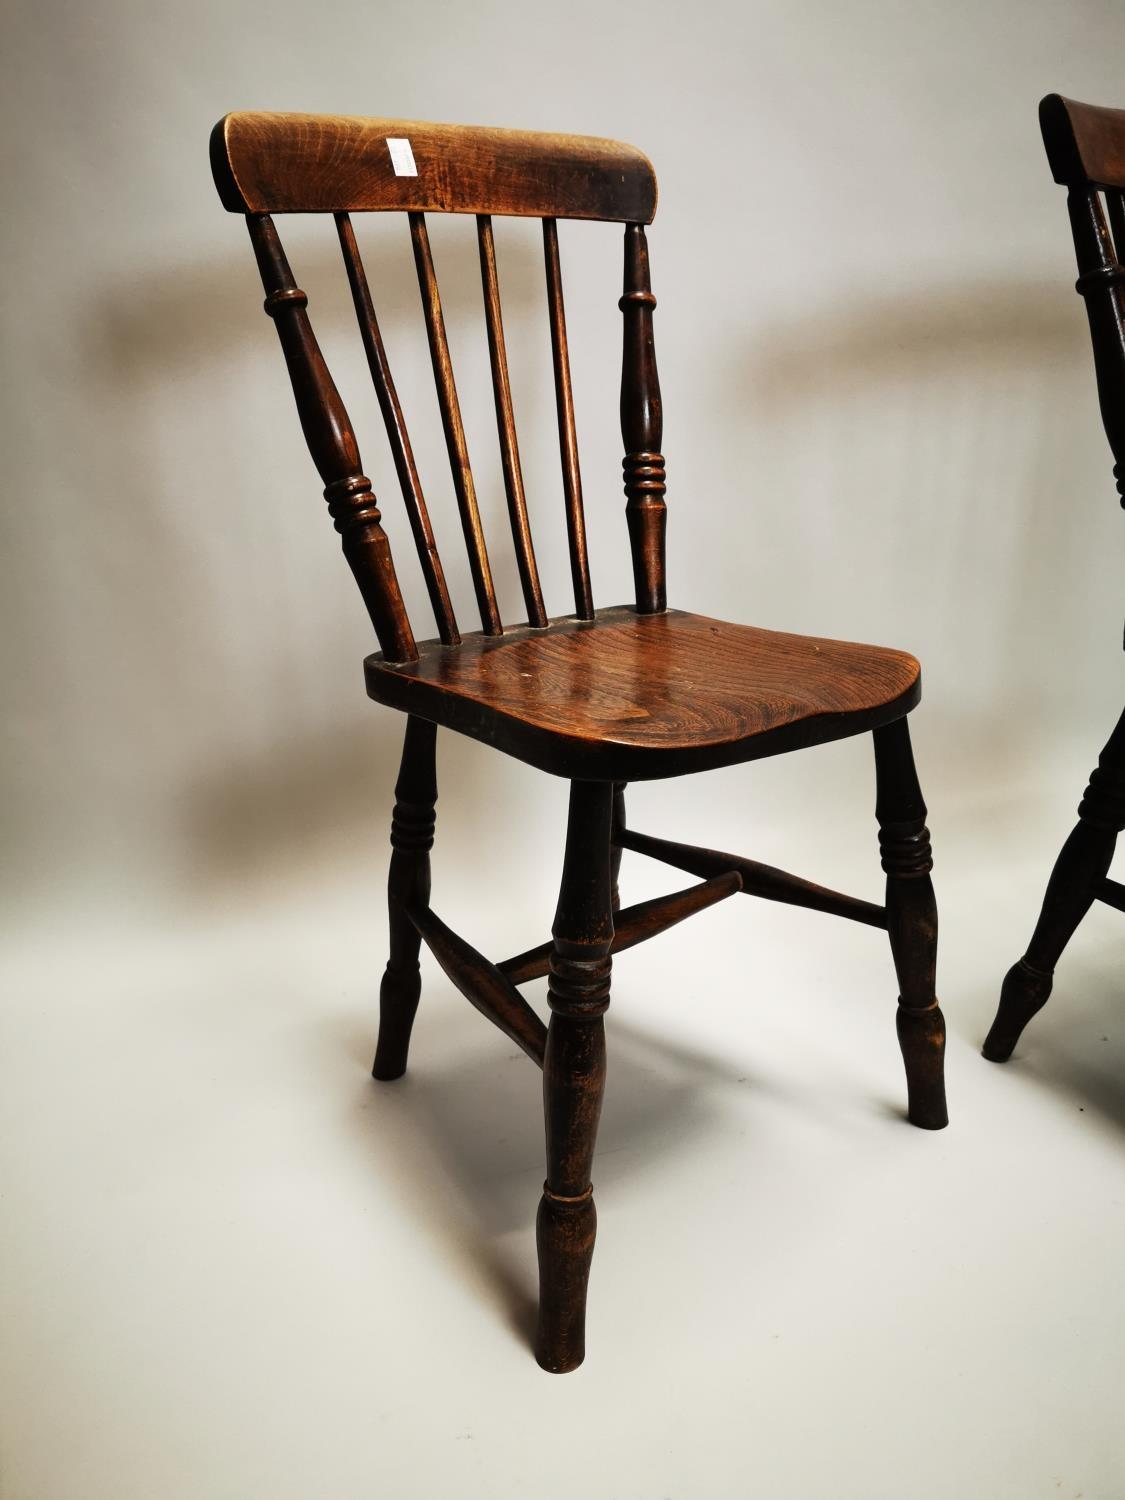 Pair of 19th C. pine and elm kitchen chairs - Image 4 of 8